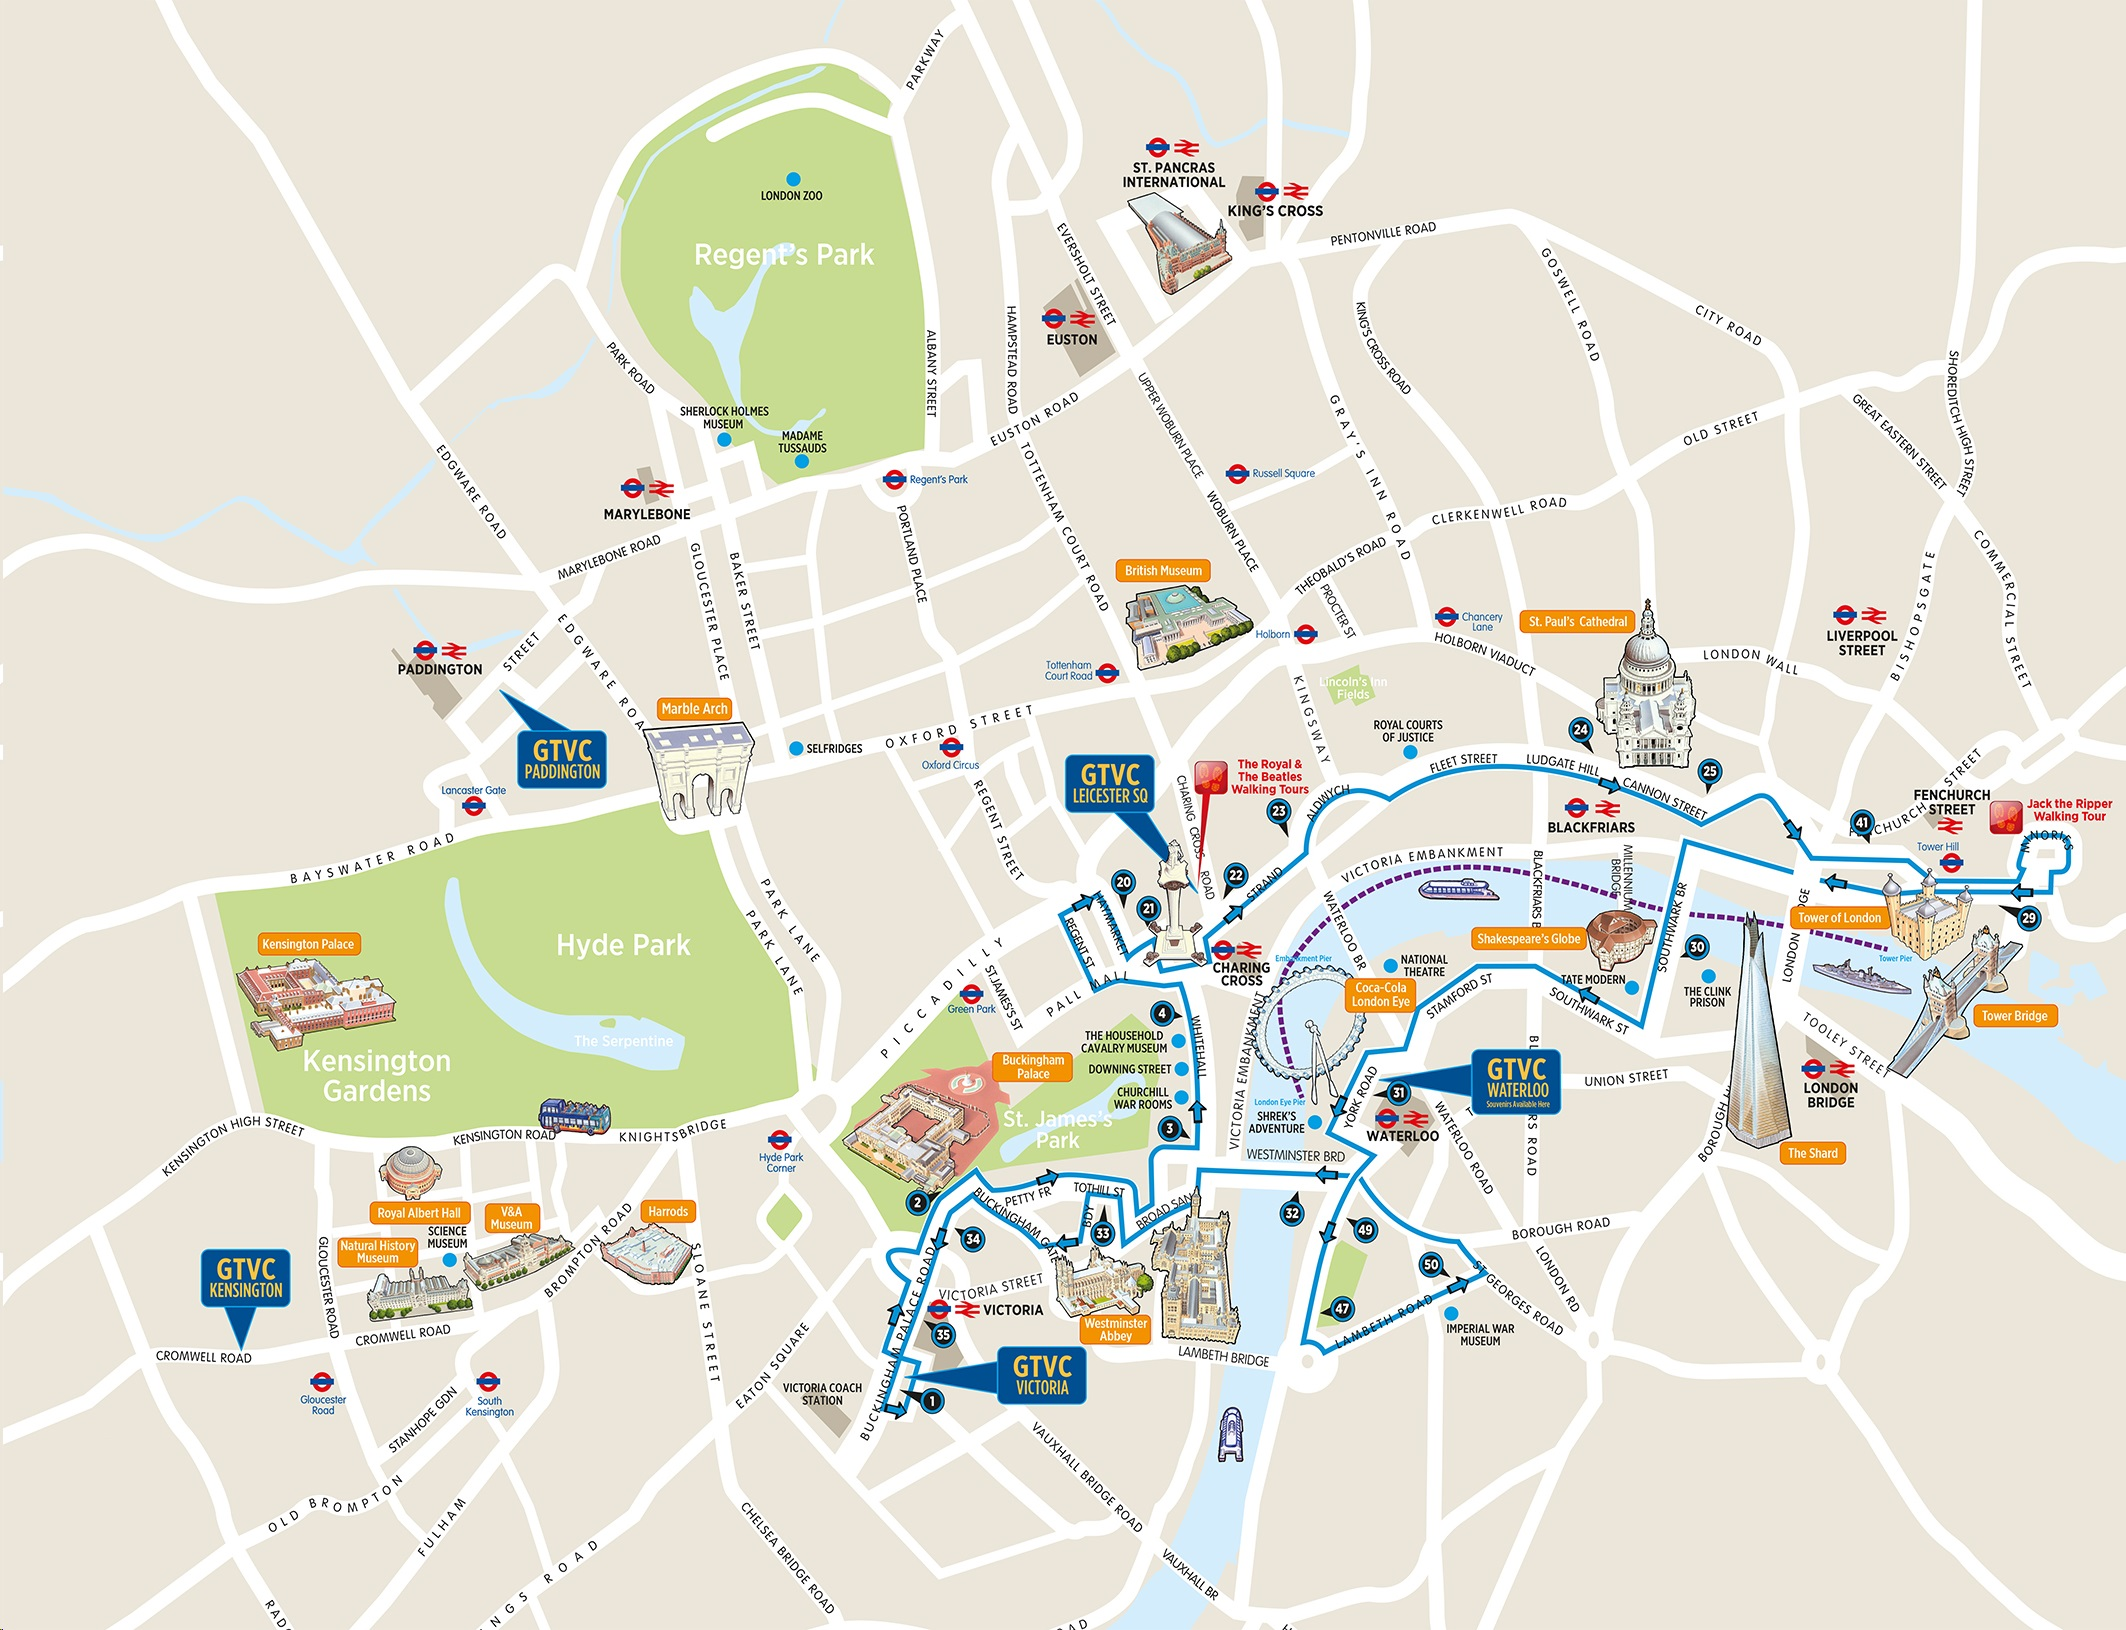 Sightseeing Map Of London.London Bus Tours Routes Maps Hop On Hop Off Plus